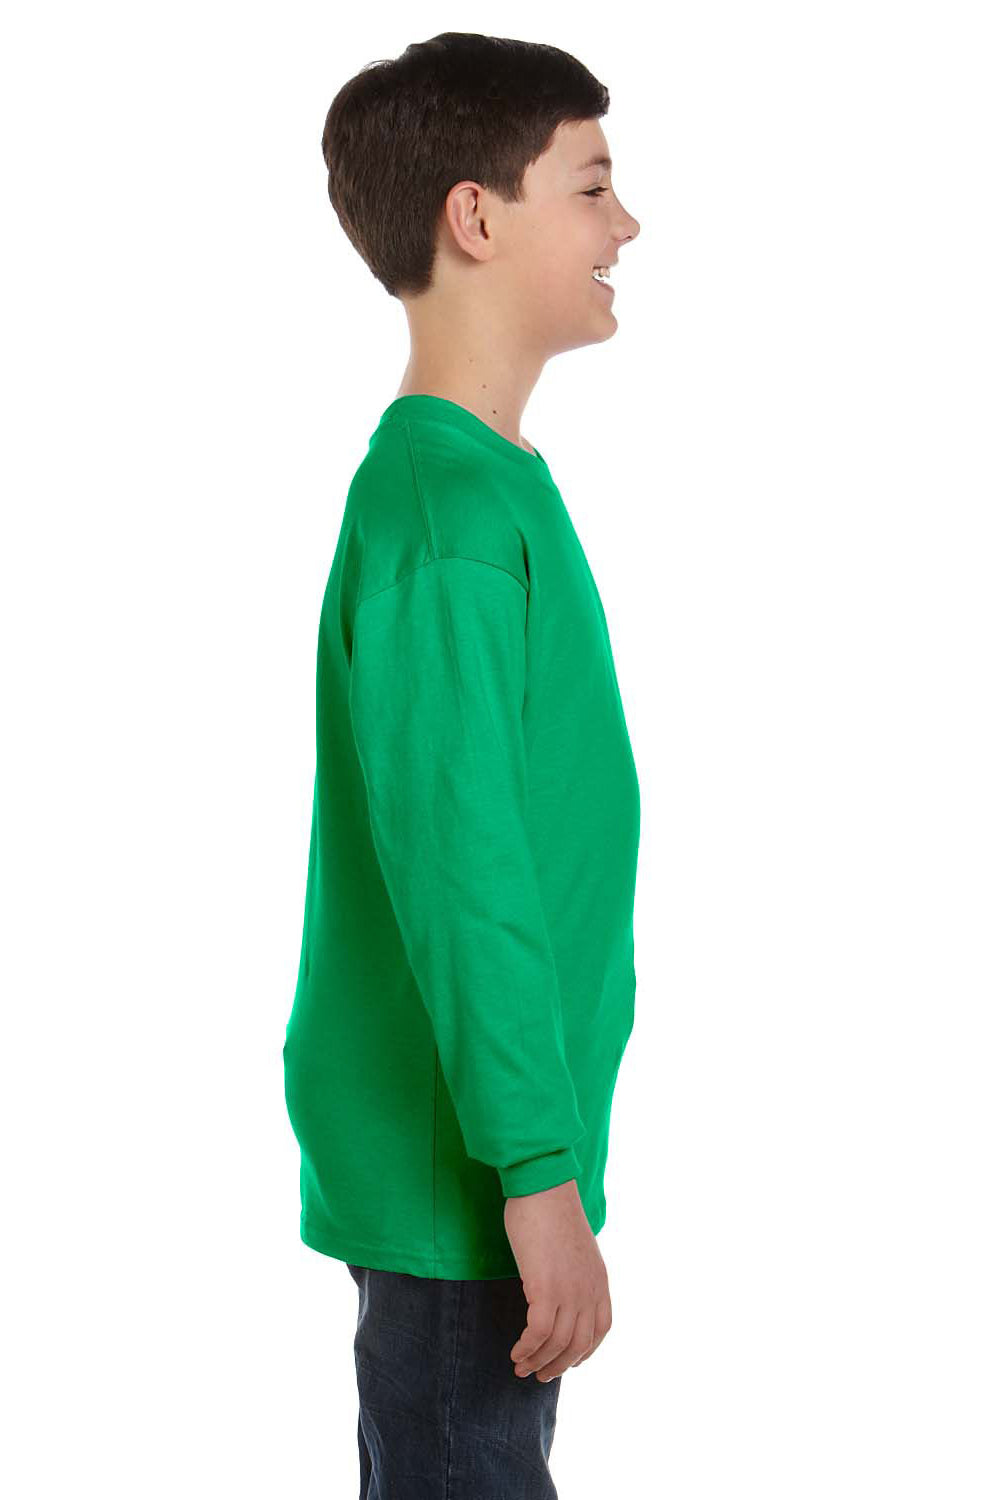 Gildan G540B Youth Long Sleeve Crewneck T-Shirt Irish Green Side